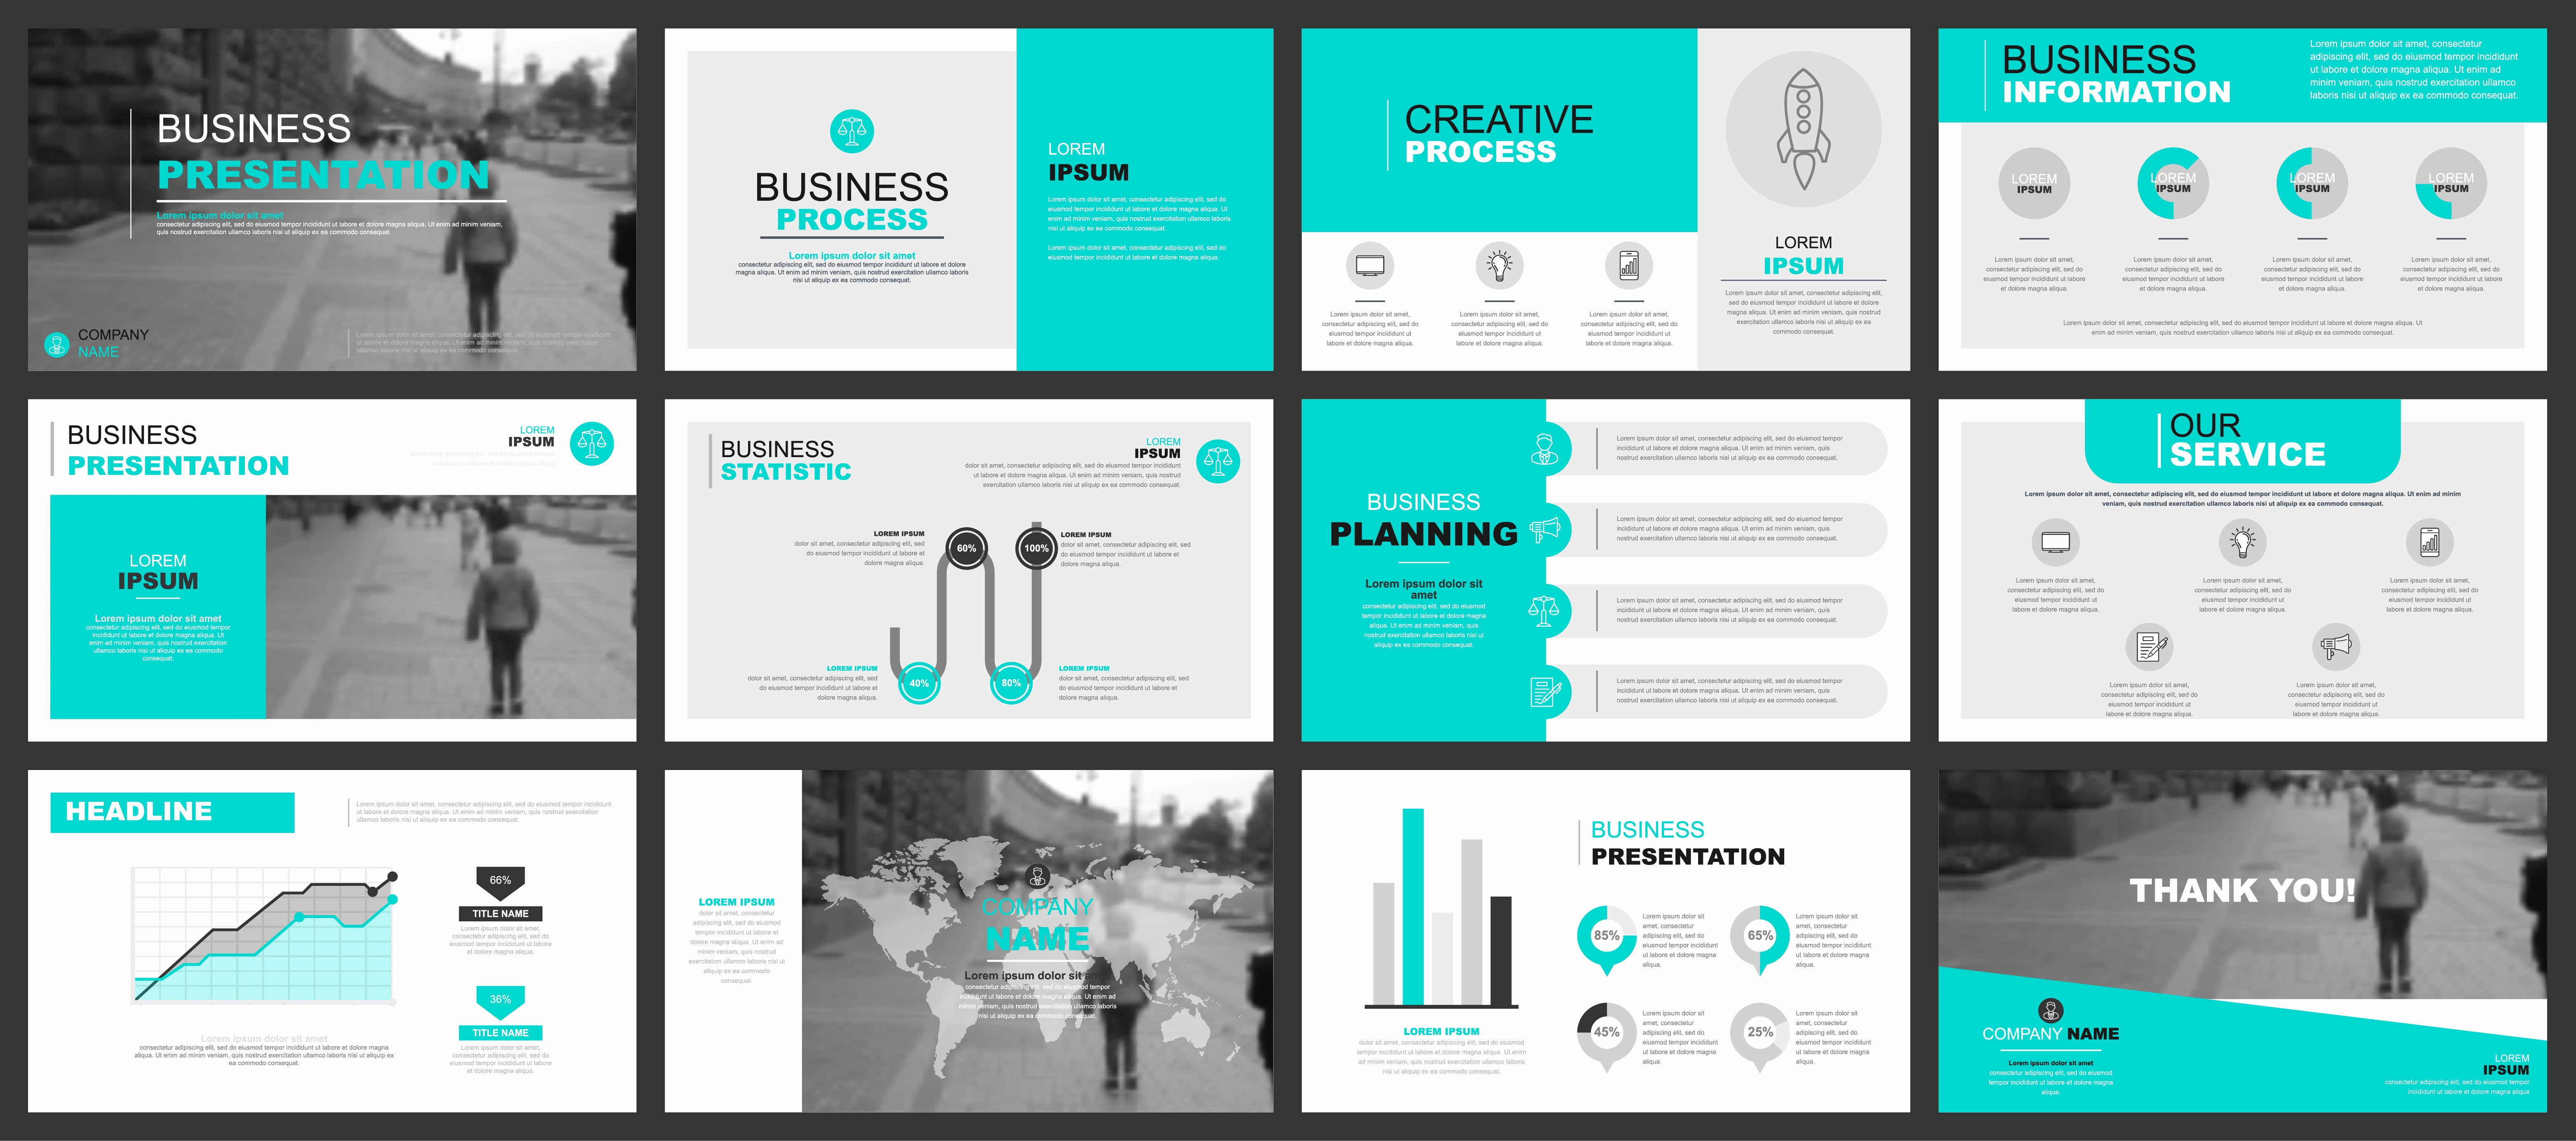 Ppt Templates for Business Presentation Fresh Business Powerpoint Presentation with Infographics